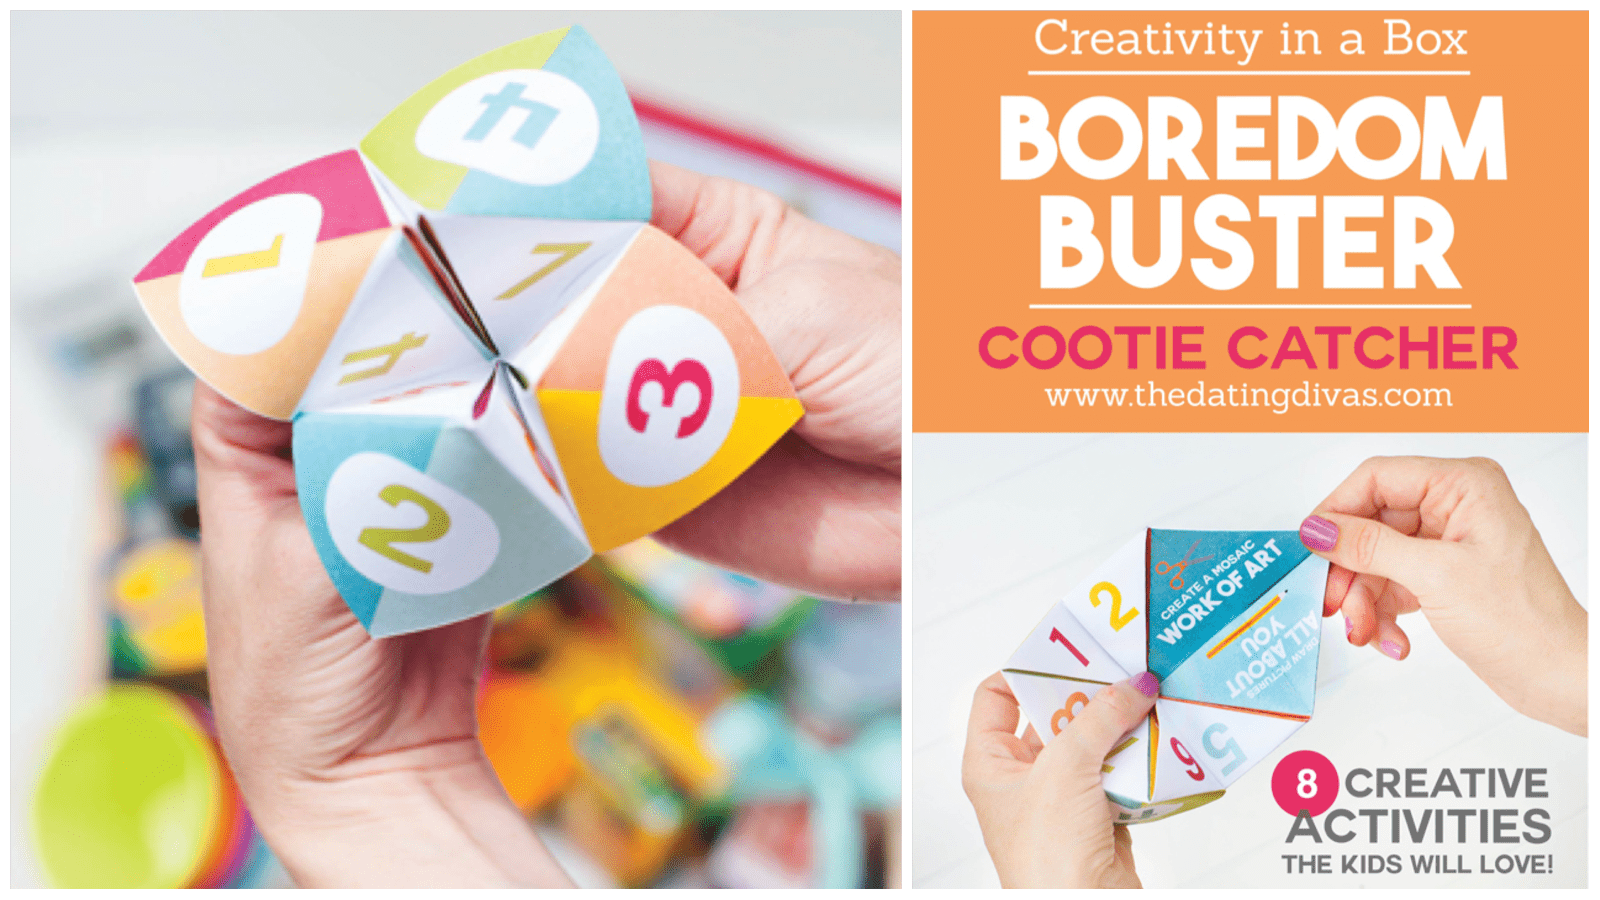 Boredom buster cootie catcher